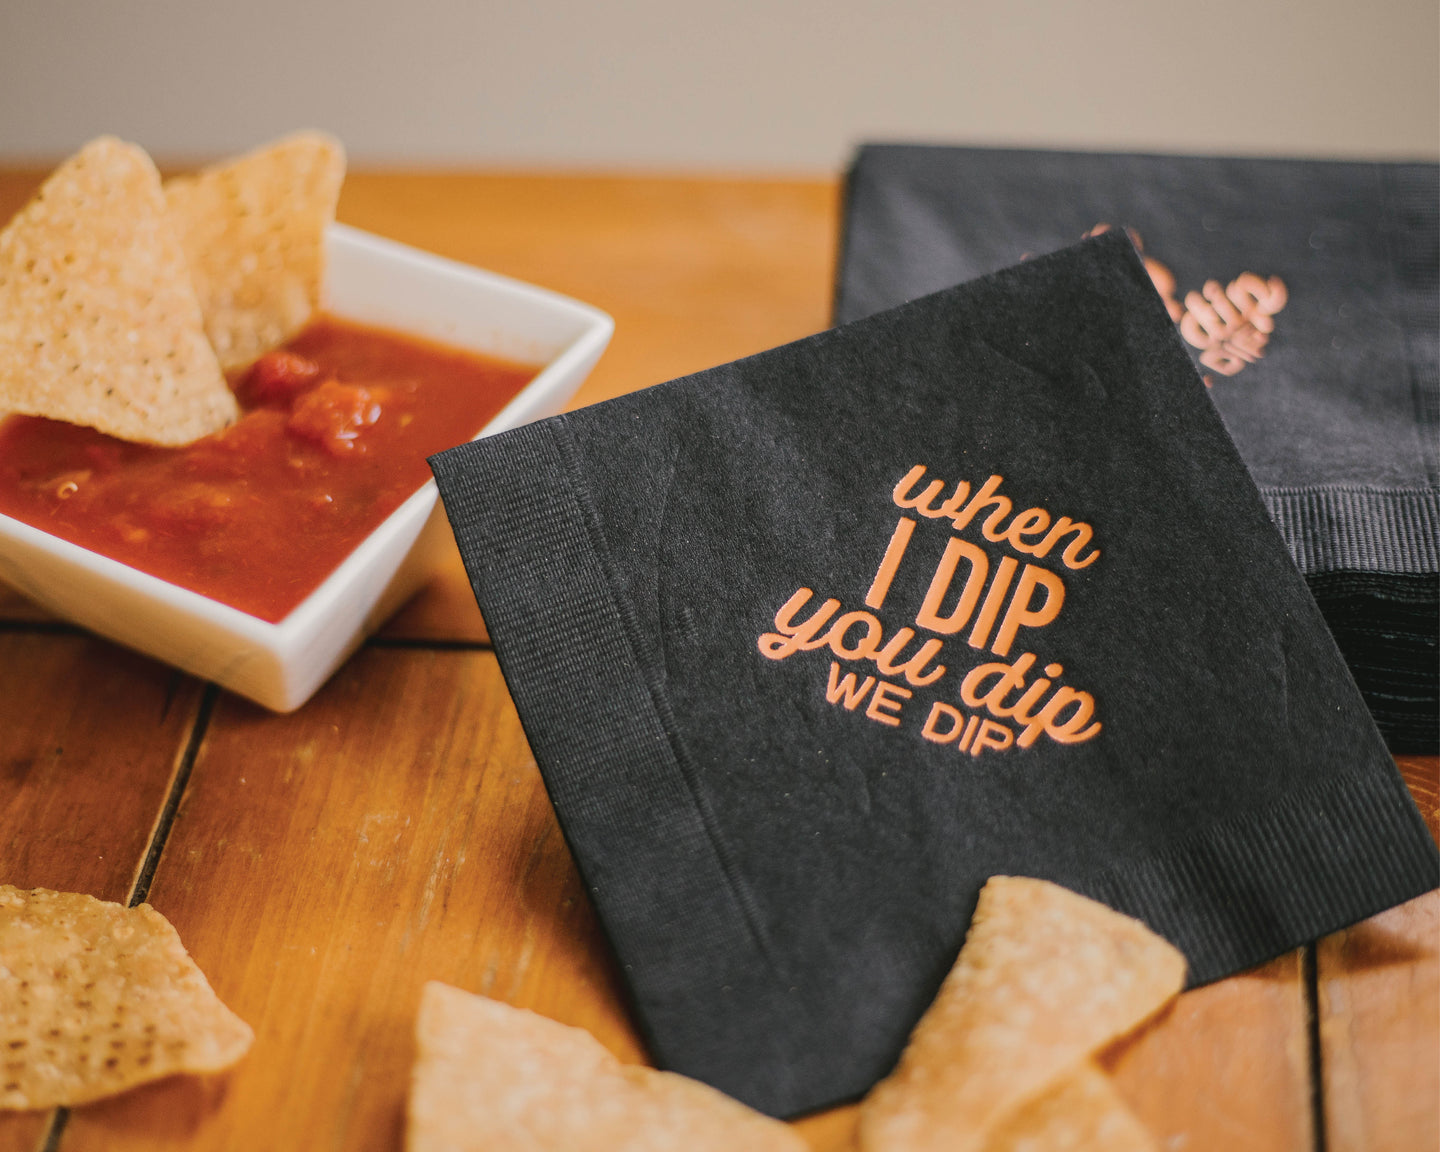 When I Dip You Dip We Dip Napkins